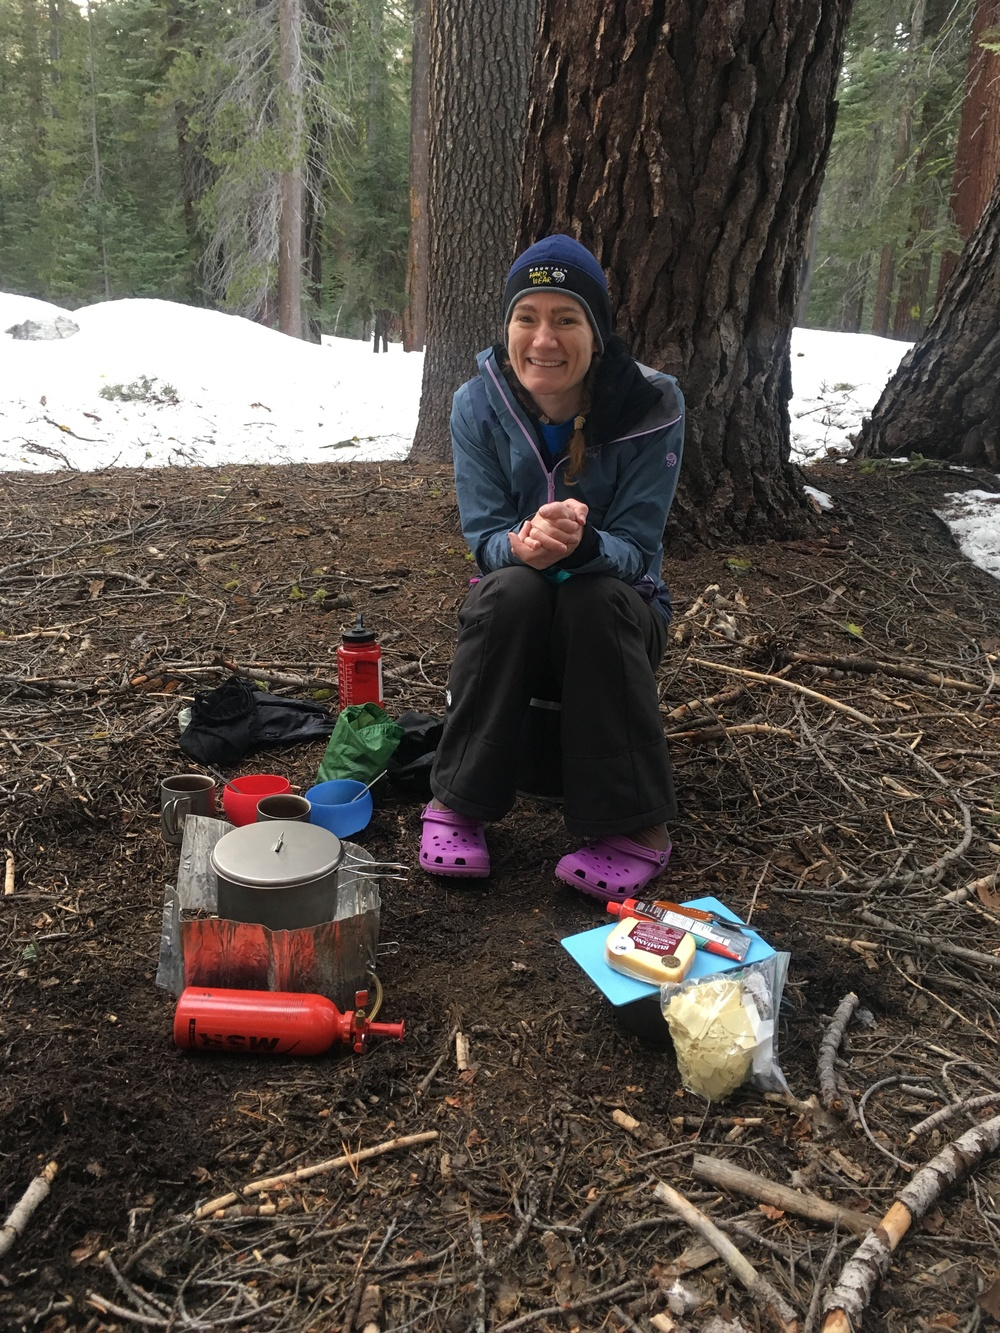 Chilly! Cheri contemplates the cooking area at our campsite before caving in and grabbing her giant down jacket.